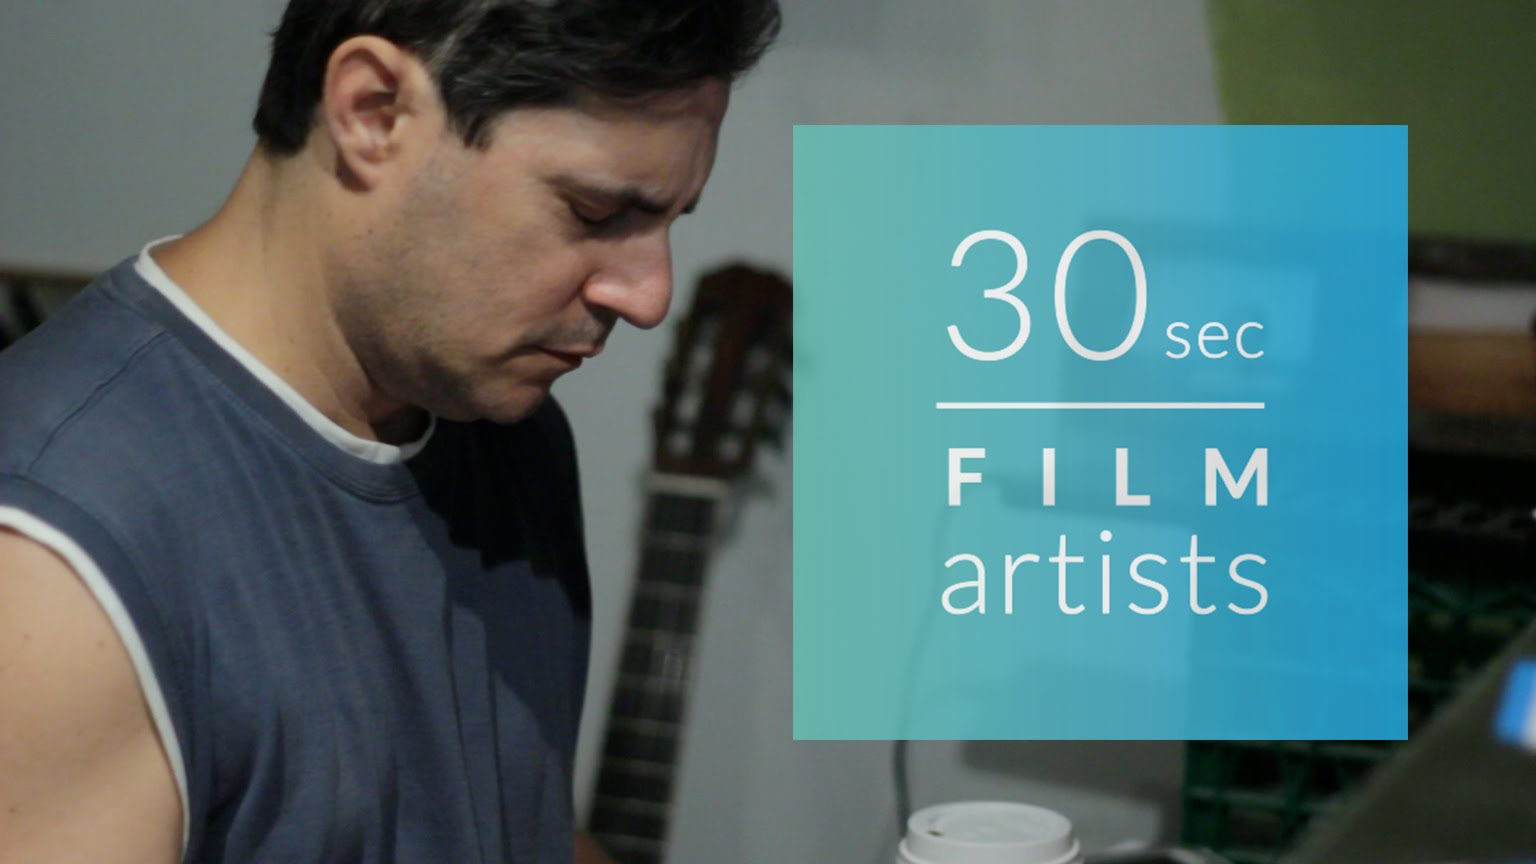 30sec film artists Vol.2 – Bob Wiseman